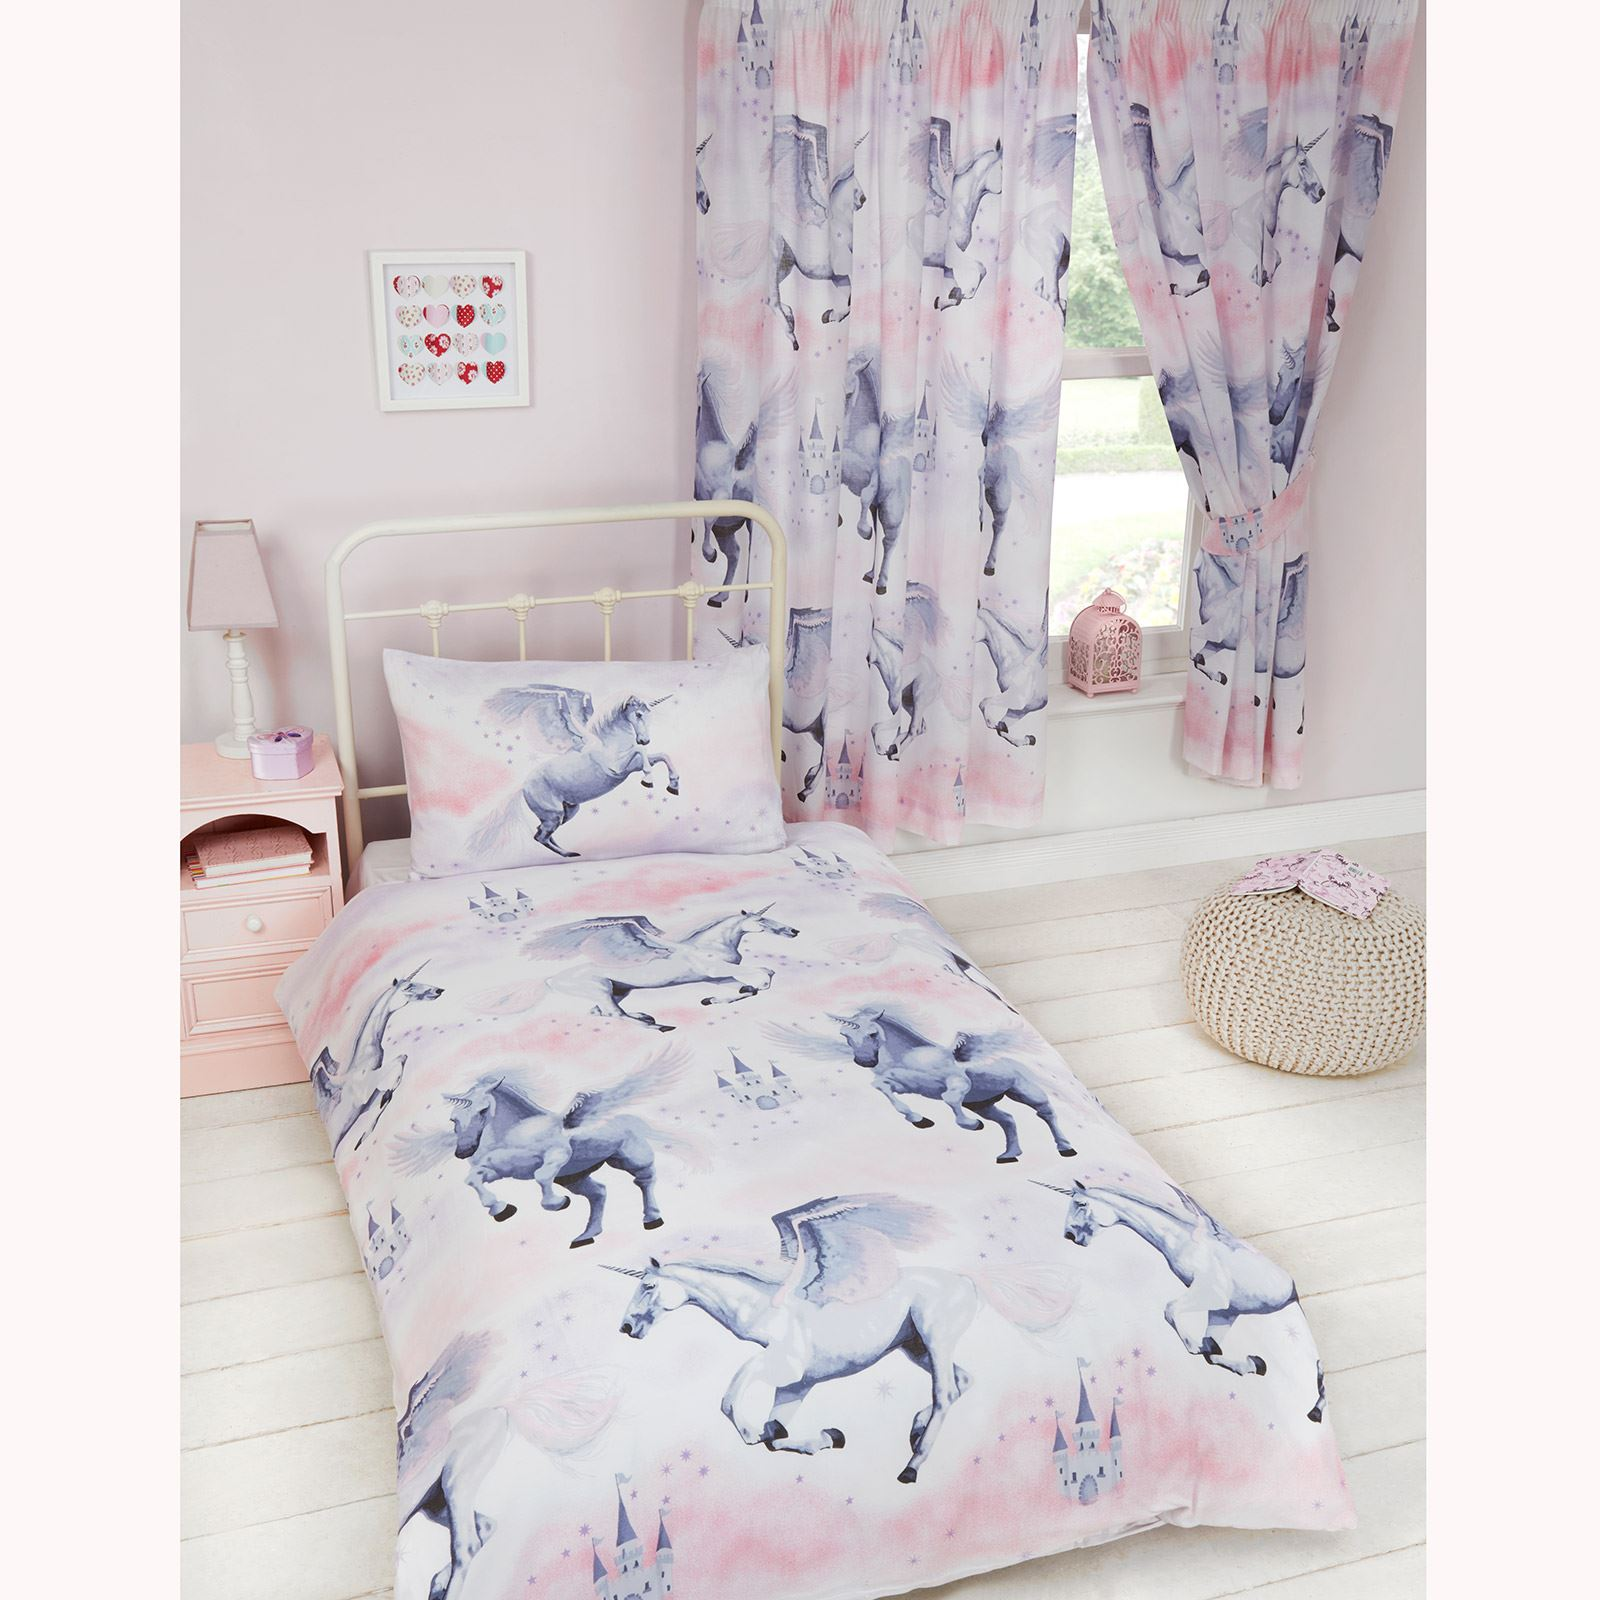 KIDS SINGLE DUVET COVER SETS BOYS GIRLS UNICORN